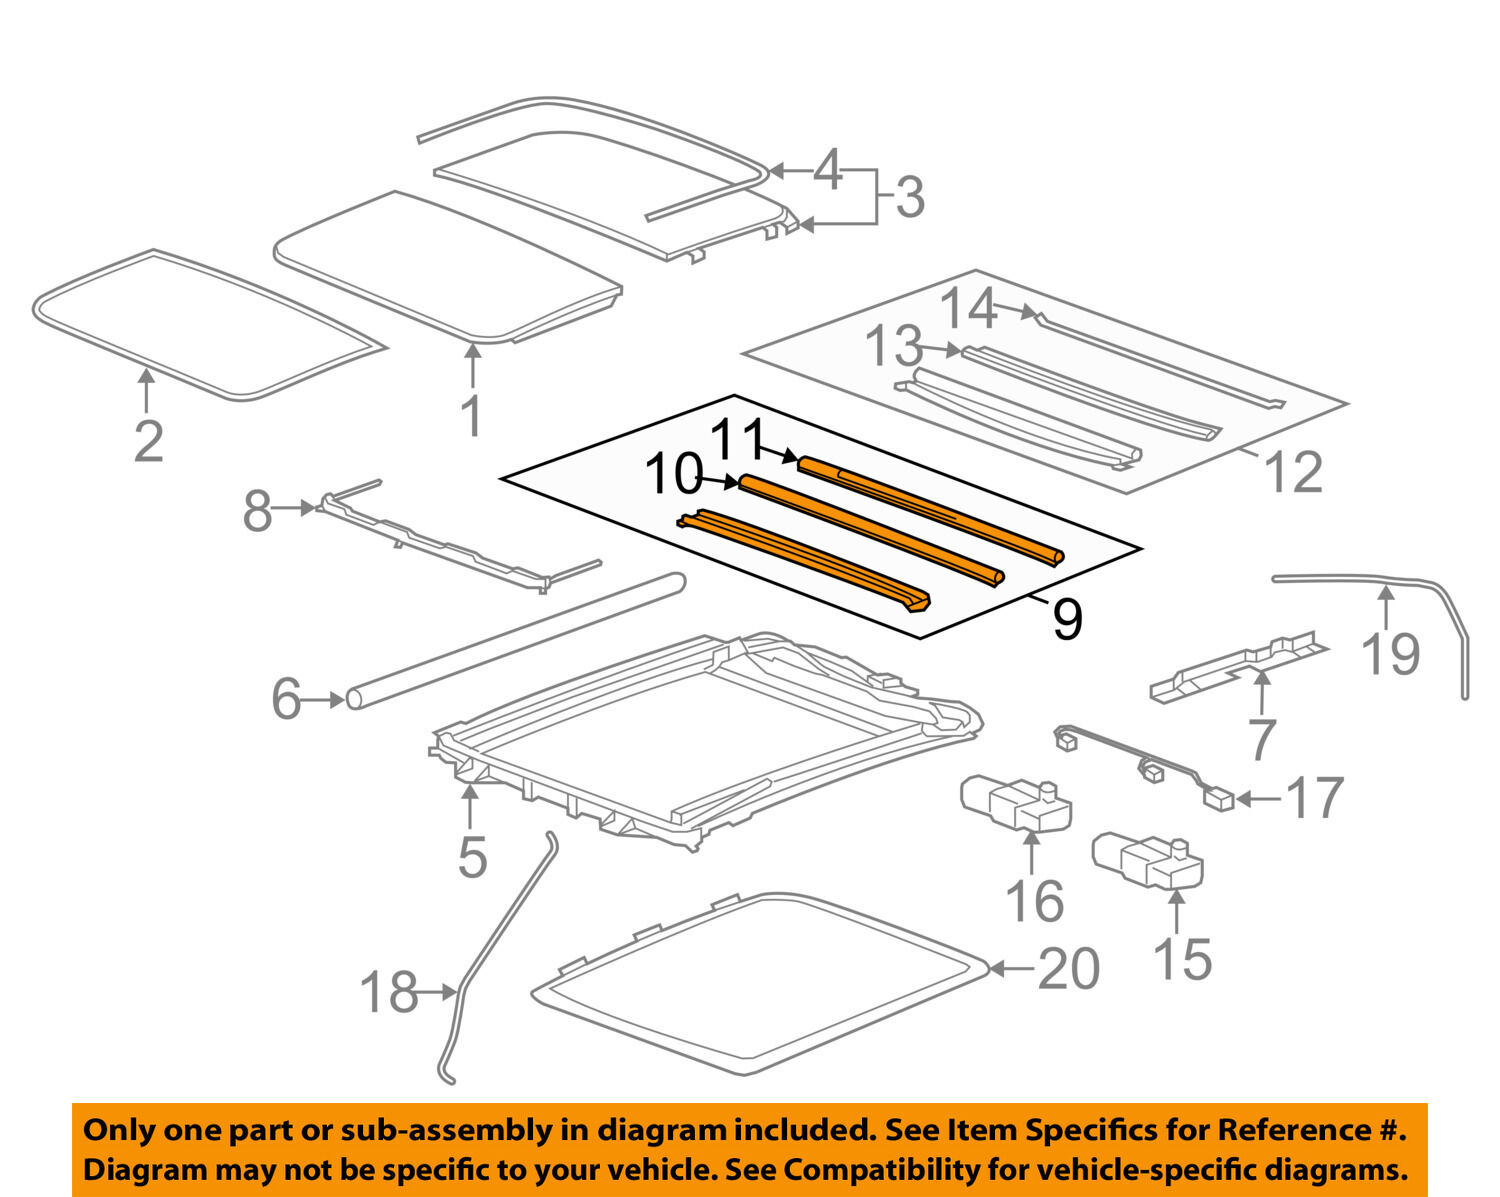 2003 Cadillac Cts Sunroof Wiring Diagram Everything About Gm Oem Drip Channel 22886294 22889266 Ebay Rh Com Thermostat Removal Deville Dts